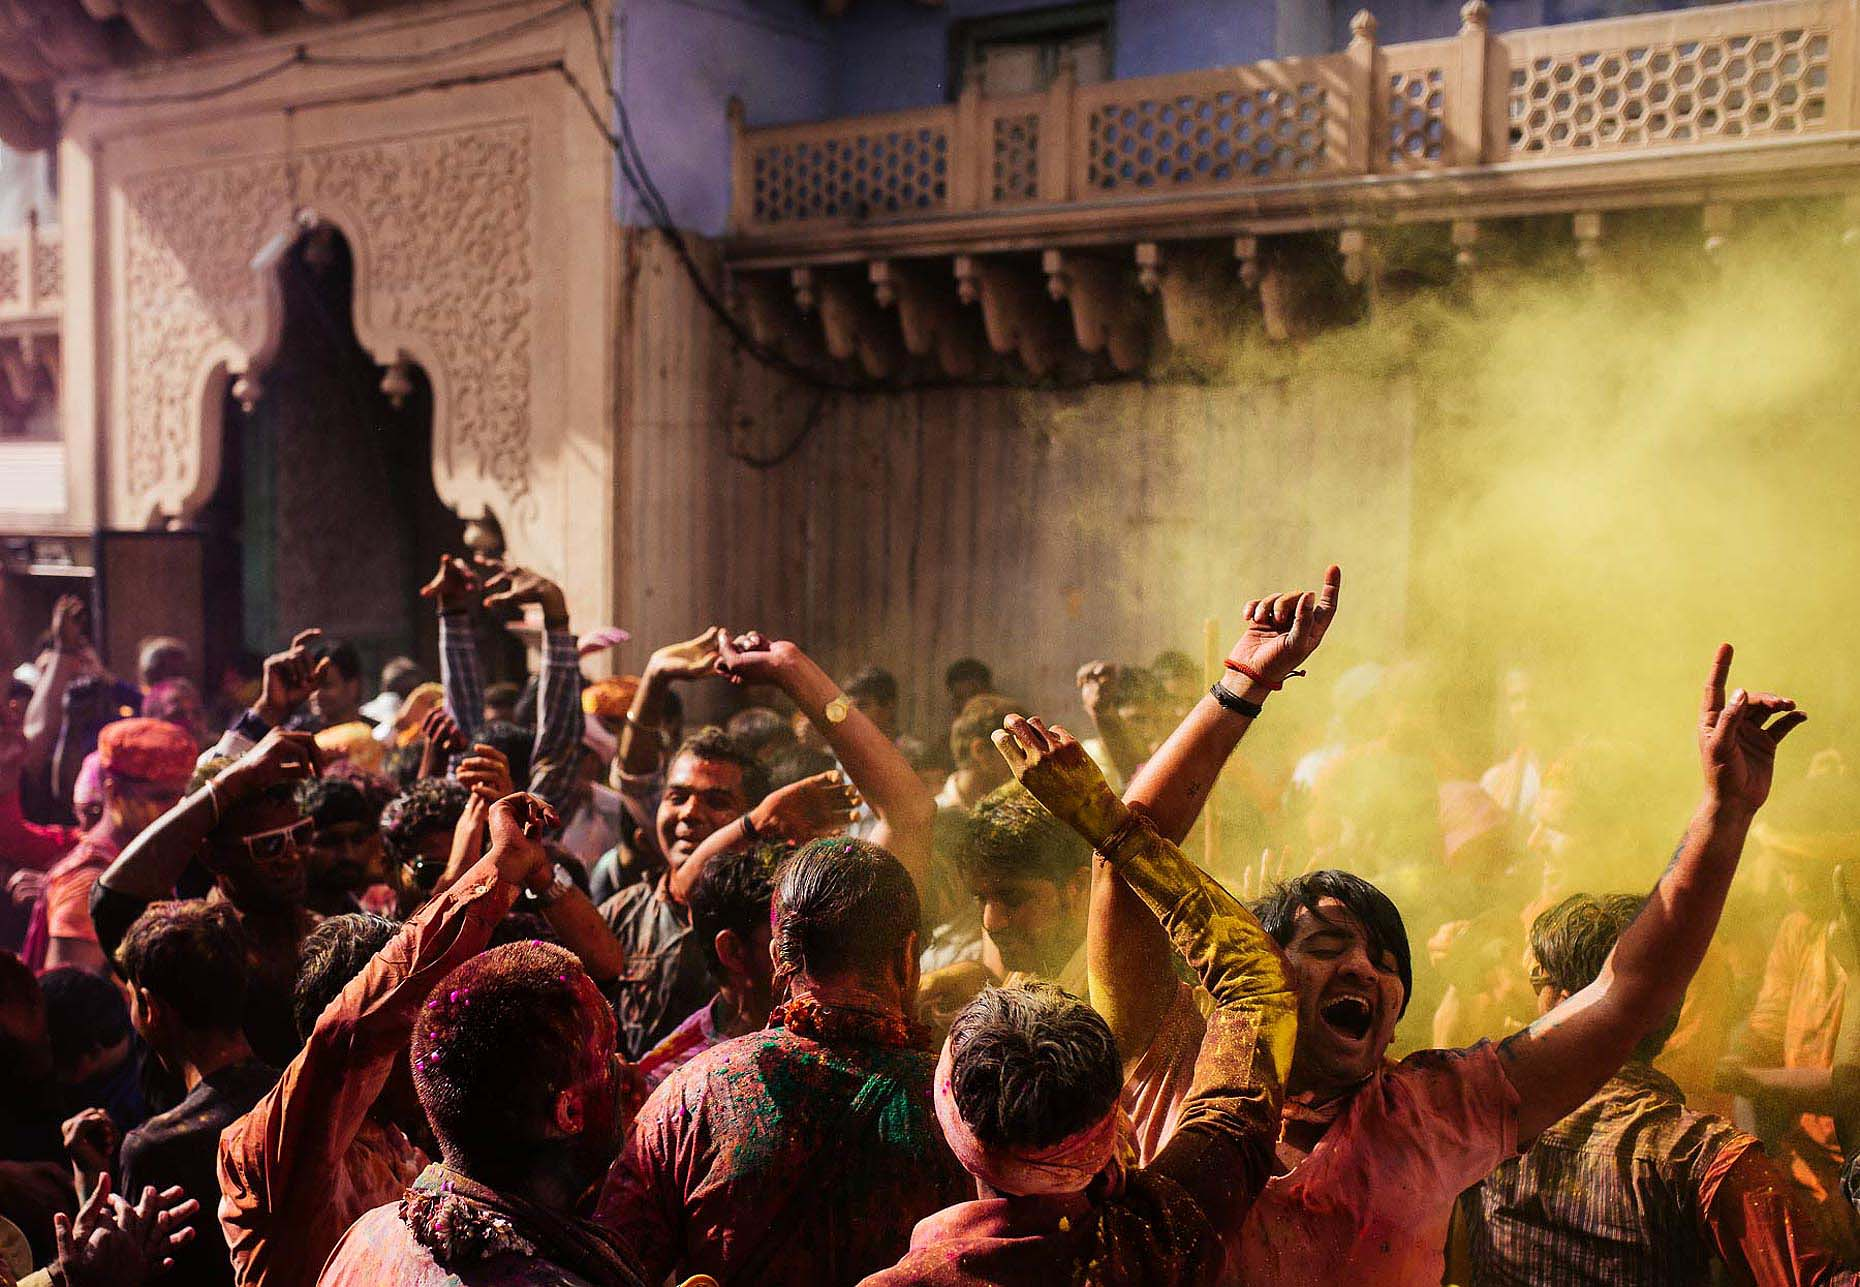 Lathmar-Celebrations-Nand-Rae-Temple-Powder-Holi-Festival-Colour-India-002